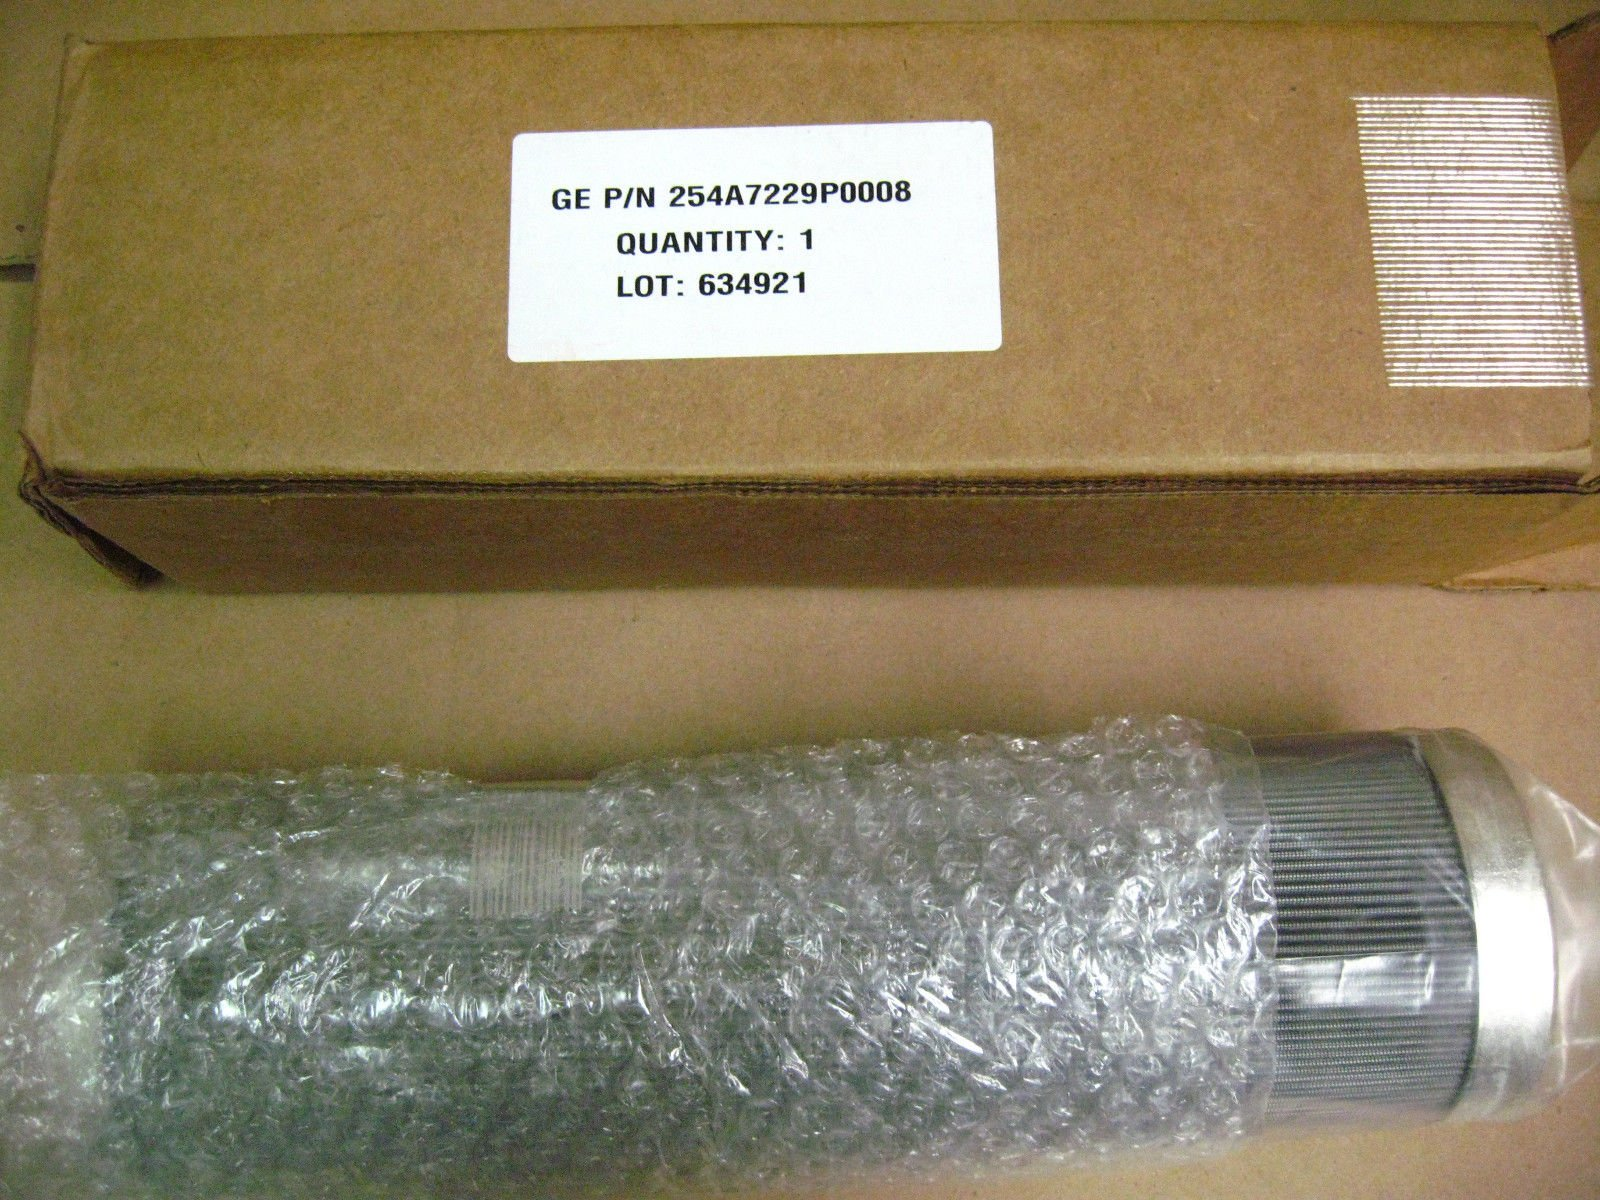 GE 254A7229P0008 Hydraulic Filter Element by GE